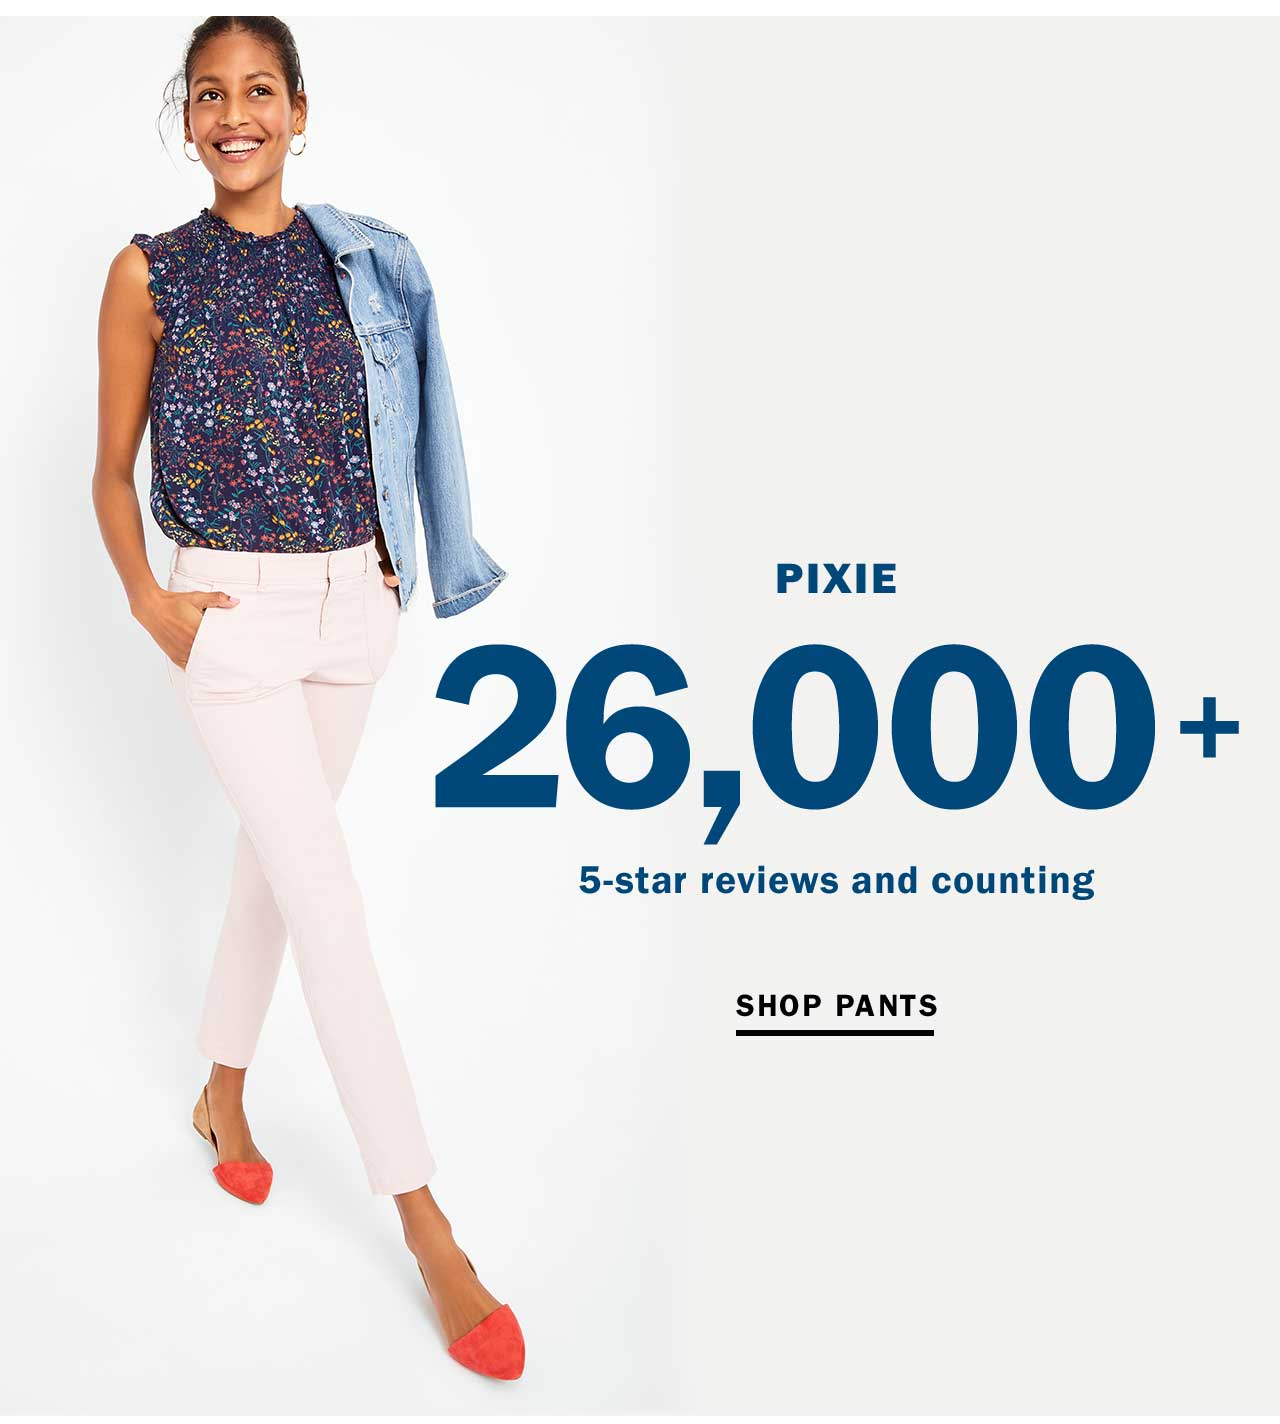 PIXIE | SHOP PANTS